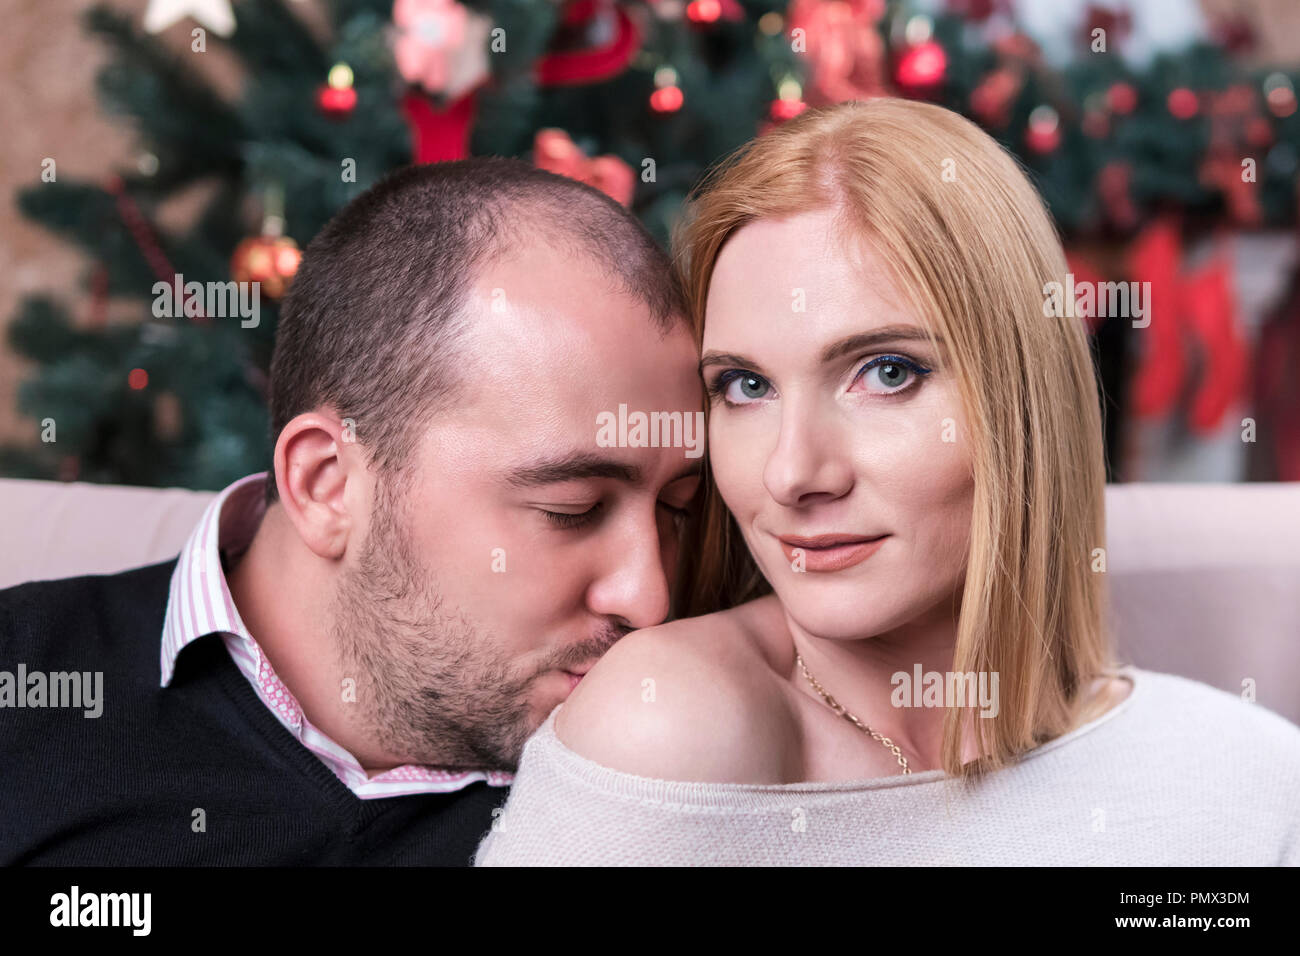 Man kisses a woman in a bare shoulder against the background of a Christmas tree - Stock Image